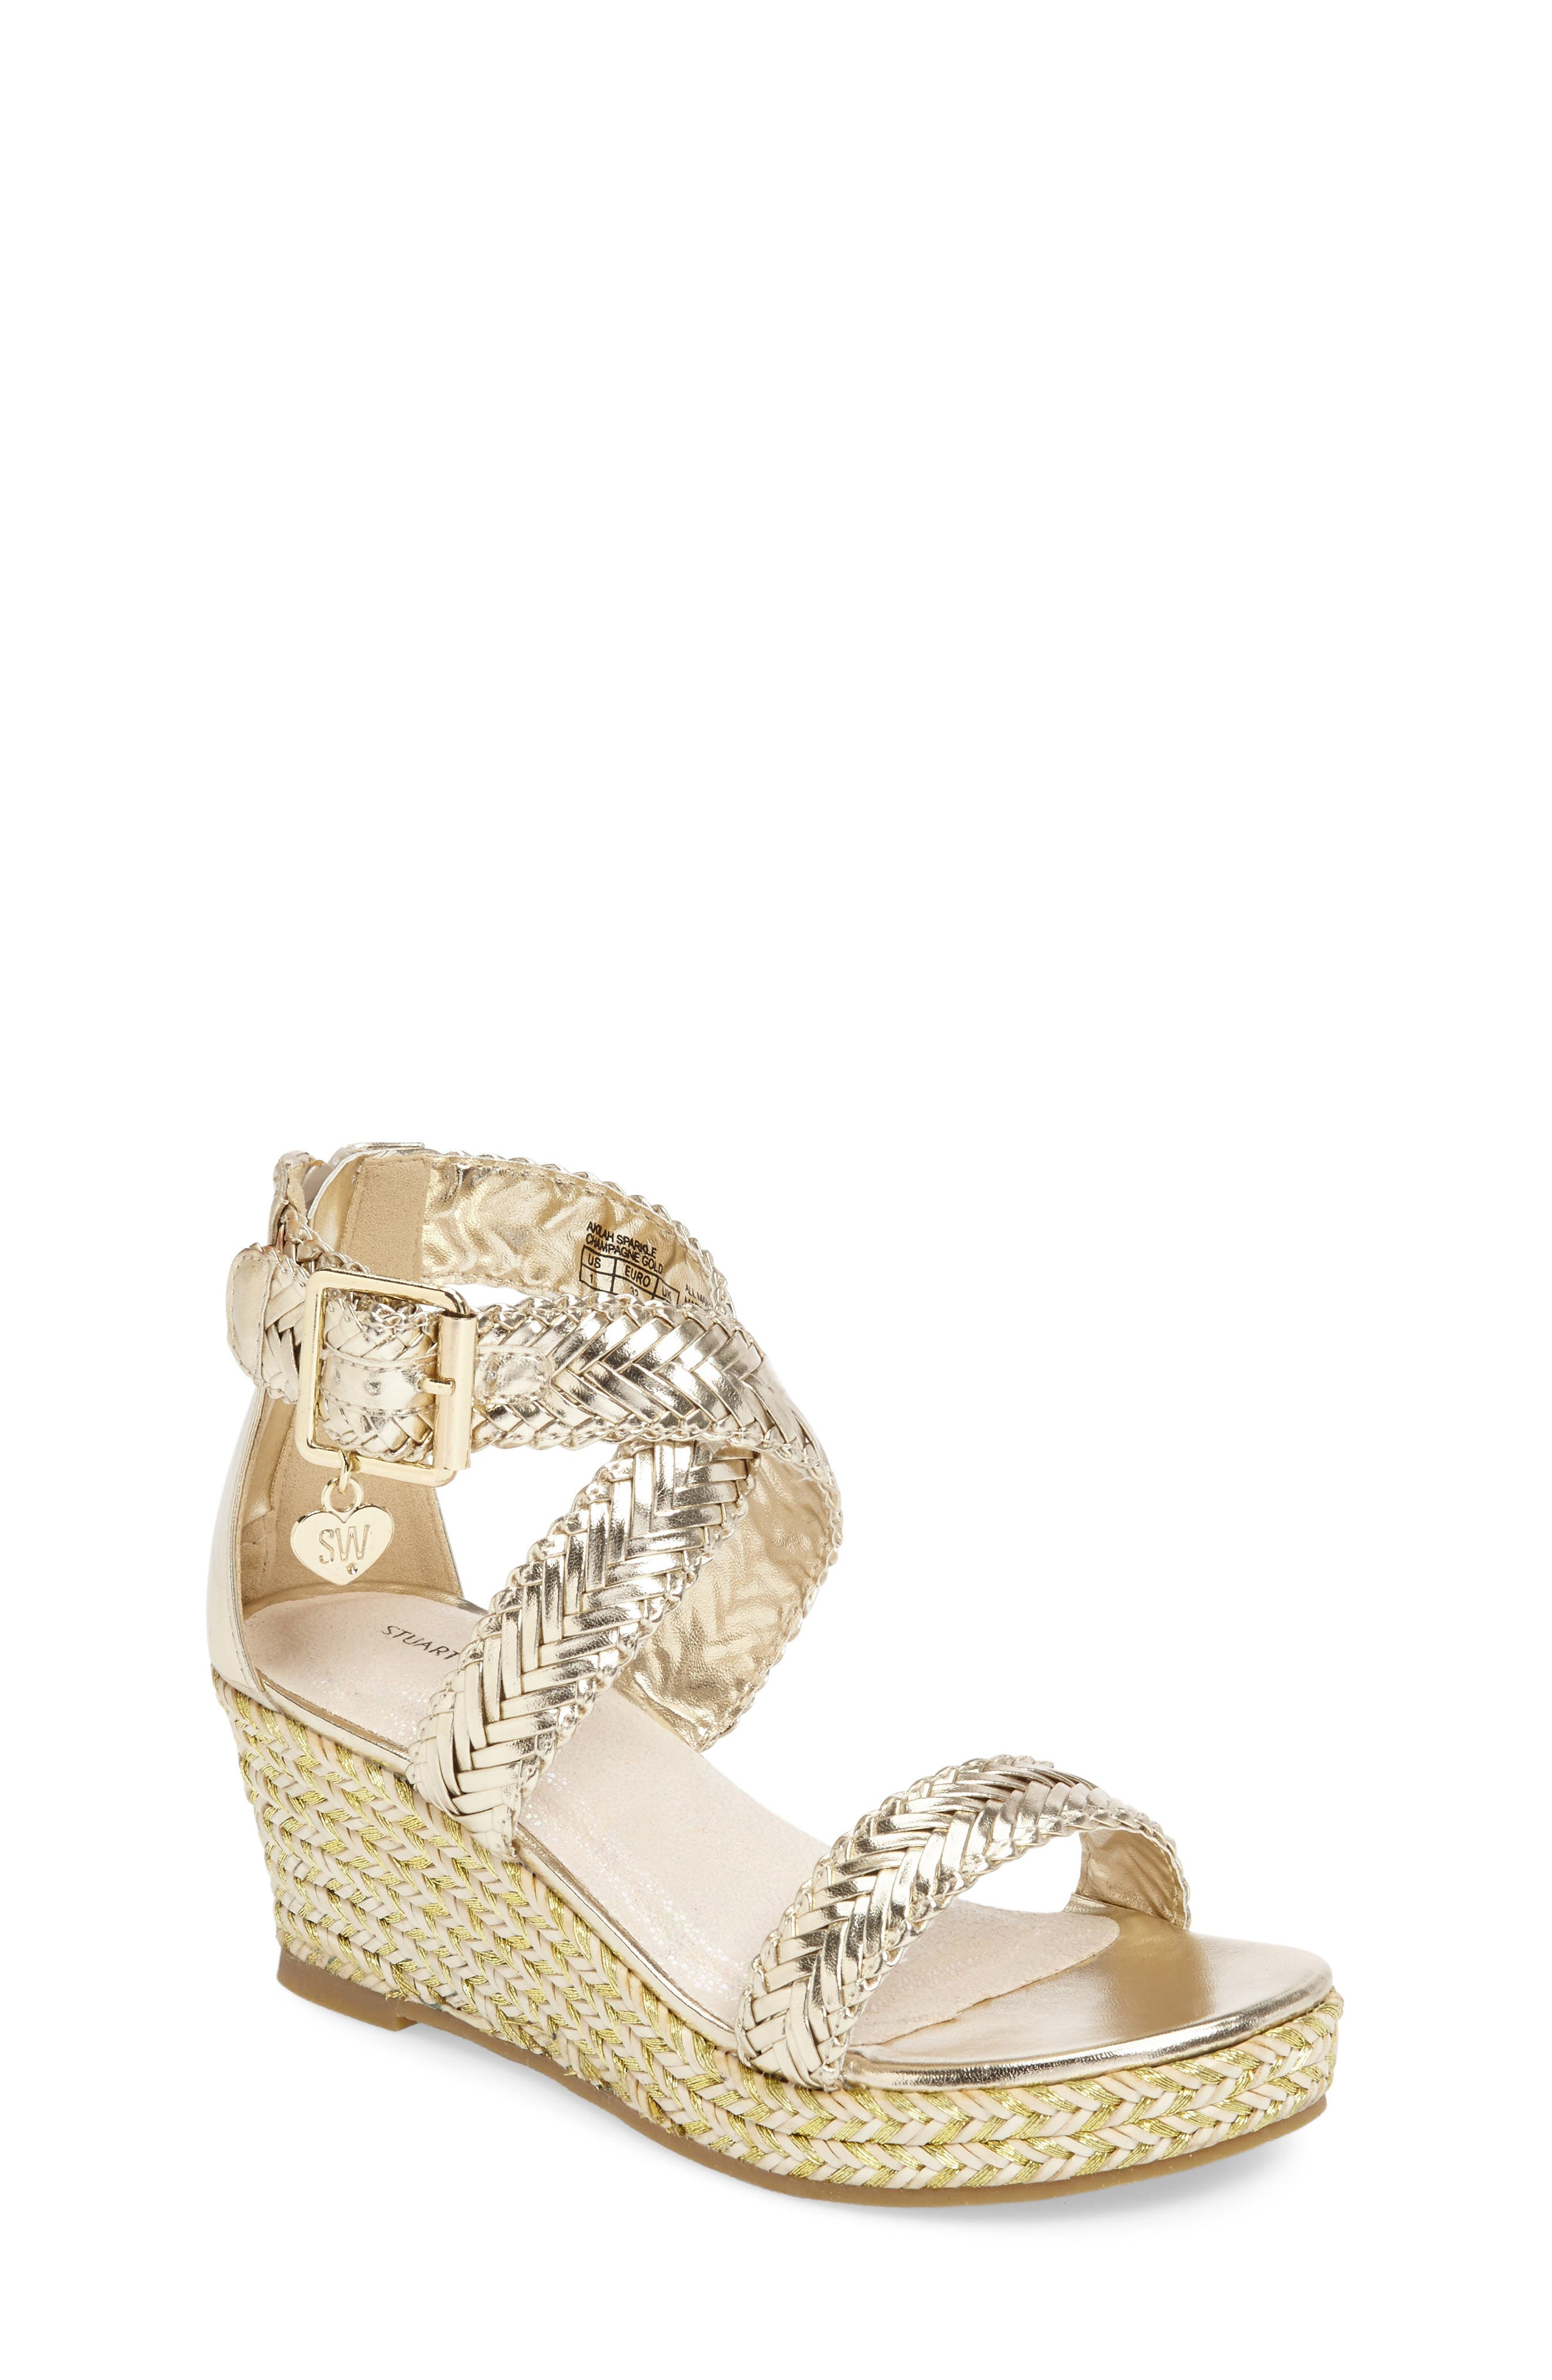 Stuart Weitzman Akilah Wedge Sandal (Toddler, Little Kid & Big Kid)